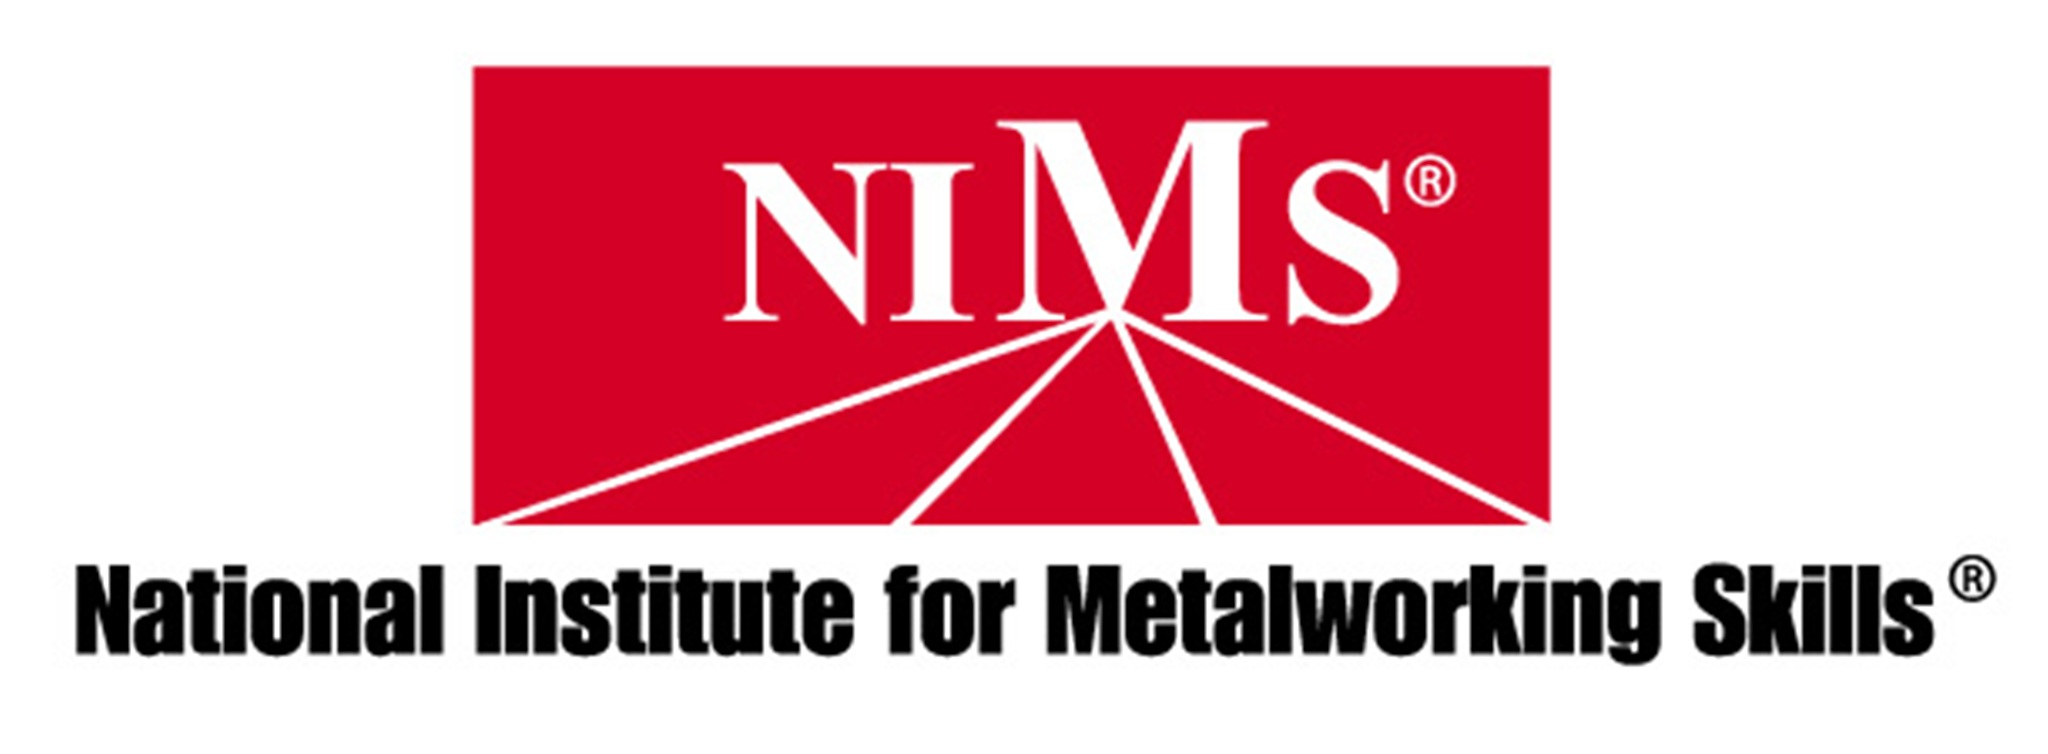 The logo for NIMS